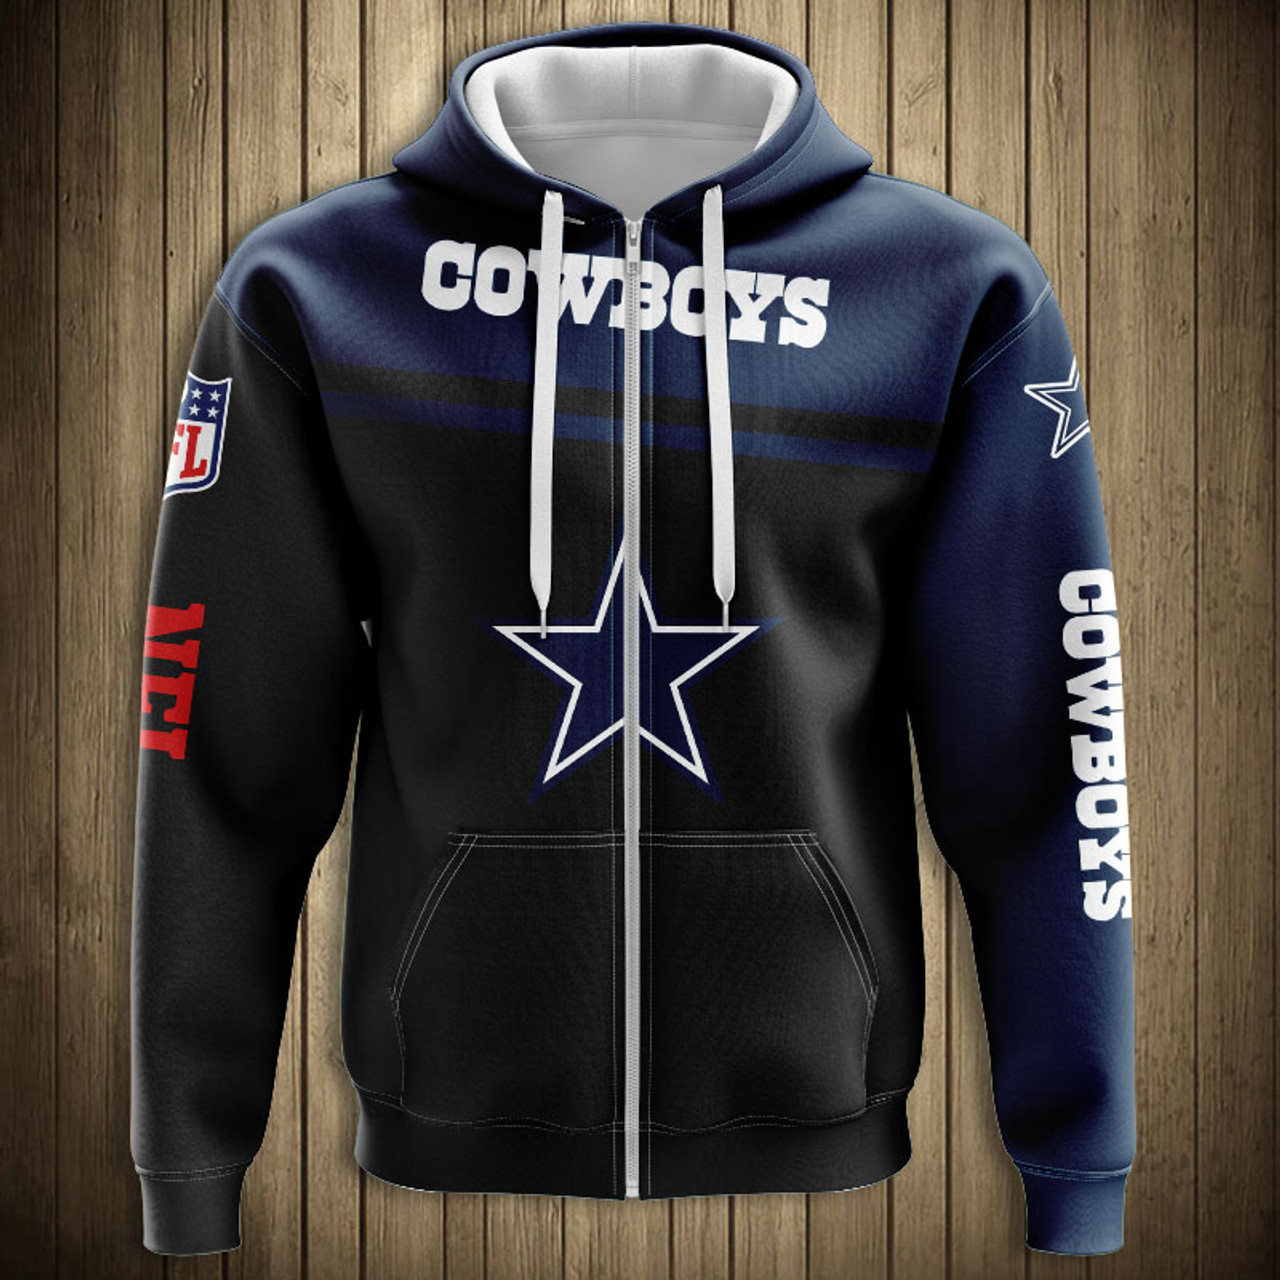 promo code 4f859 30514 **(OFFICIALLY-LICENSED-N.F.L.DALLAS-COWBOYS-TEAM-ZIPPERED-HOODIES/NICE-CUSTOM-3D-GRAPHIC-PRINTED-DOUBLE-SIDED-ALL-OVER-GRAPHIC-COWBOYS-LOGOS  & ...